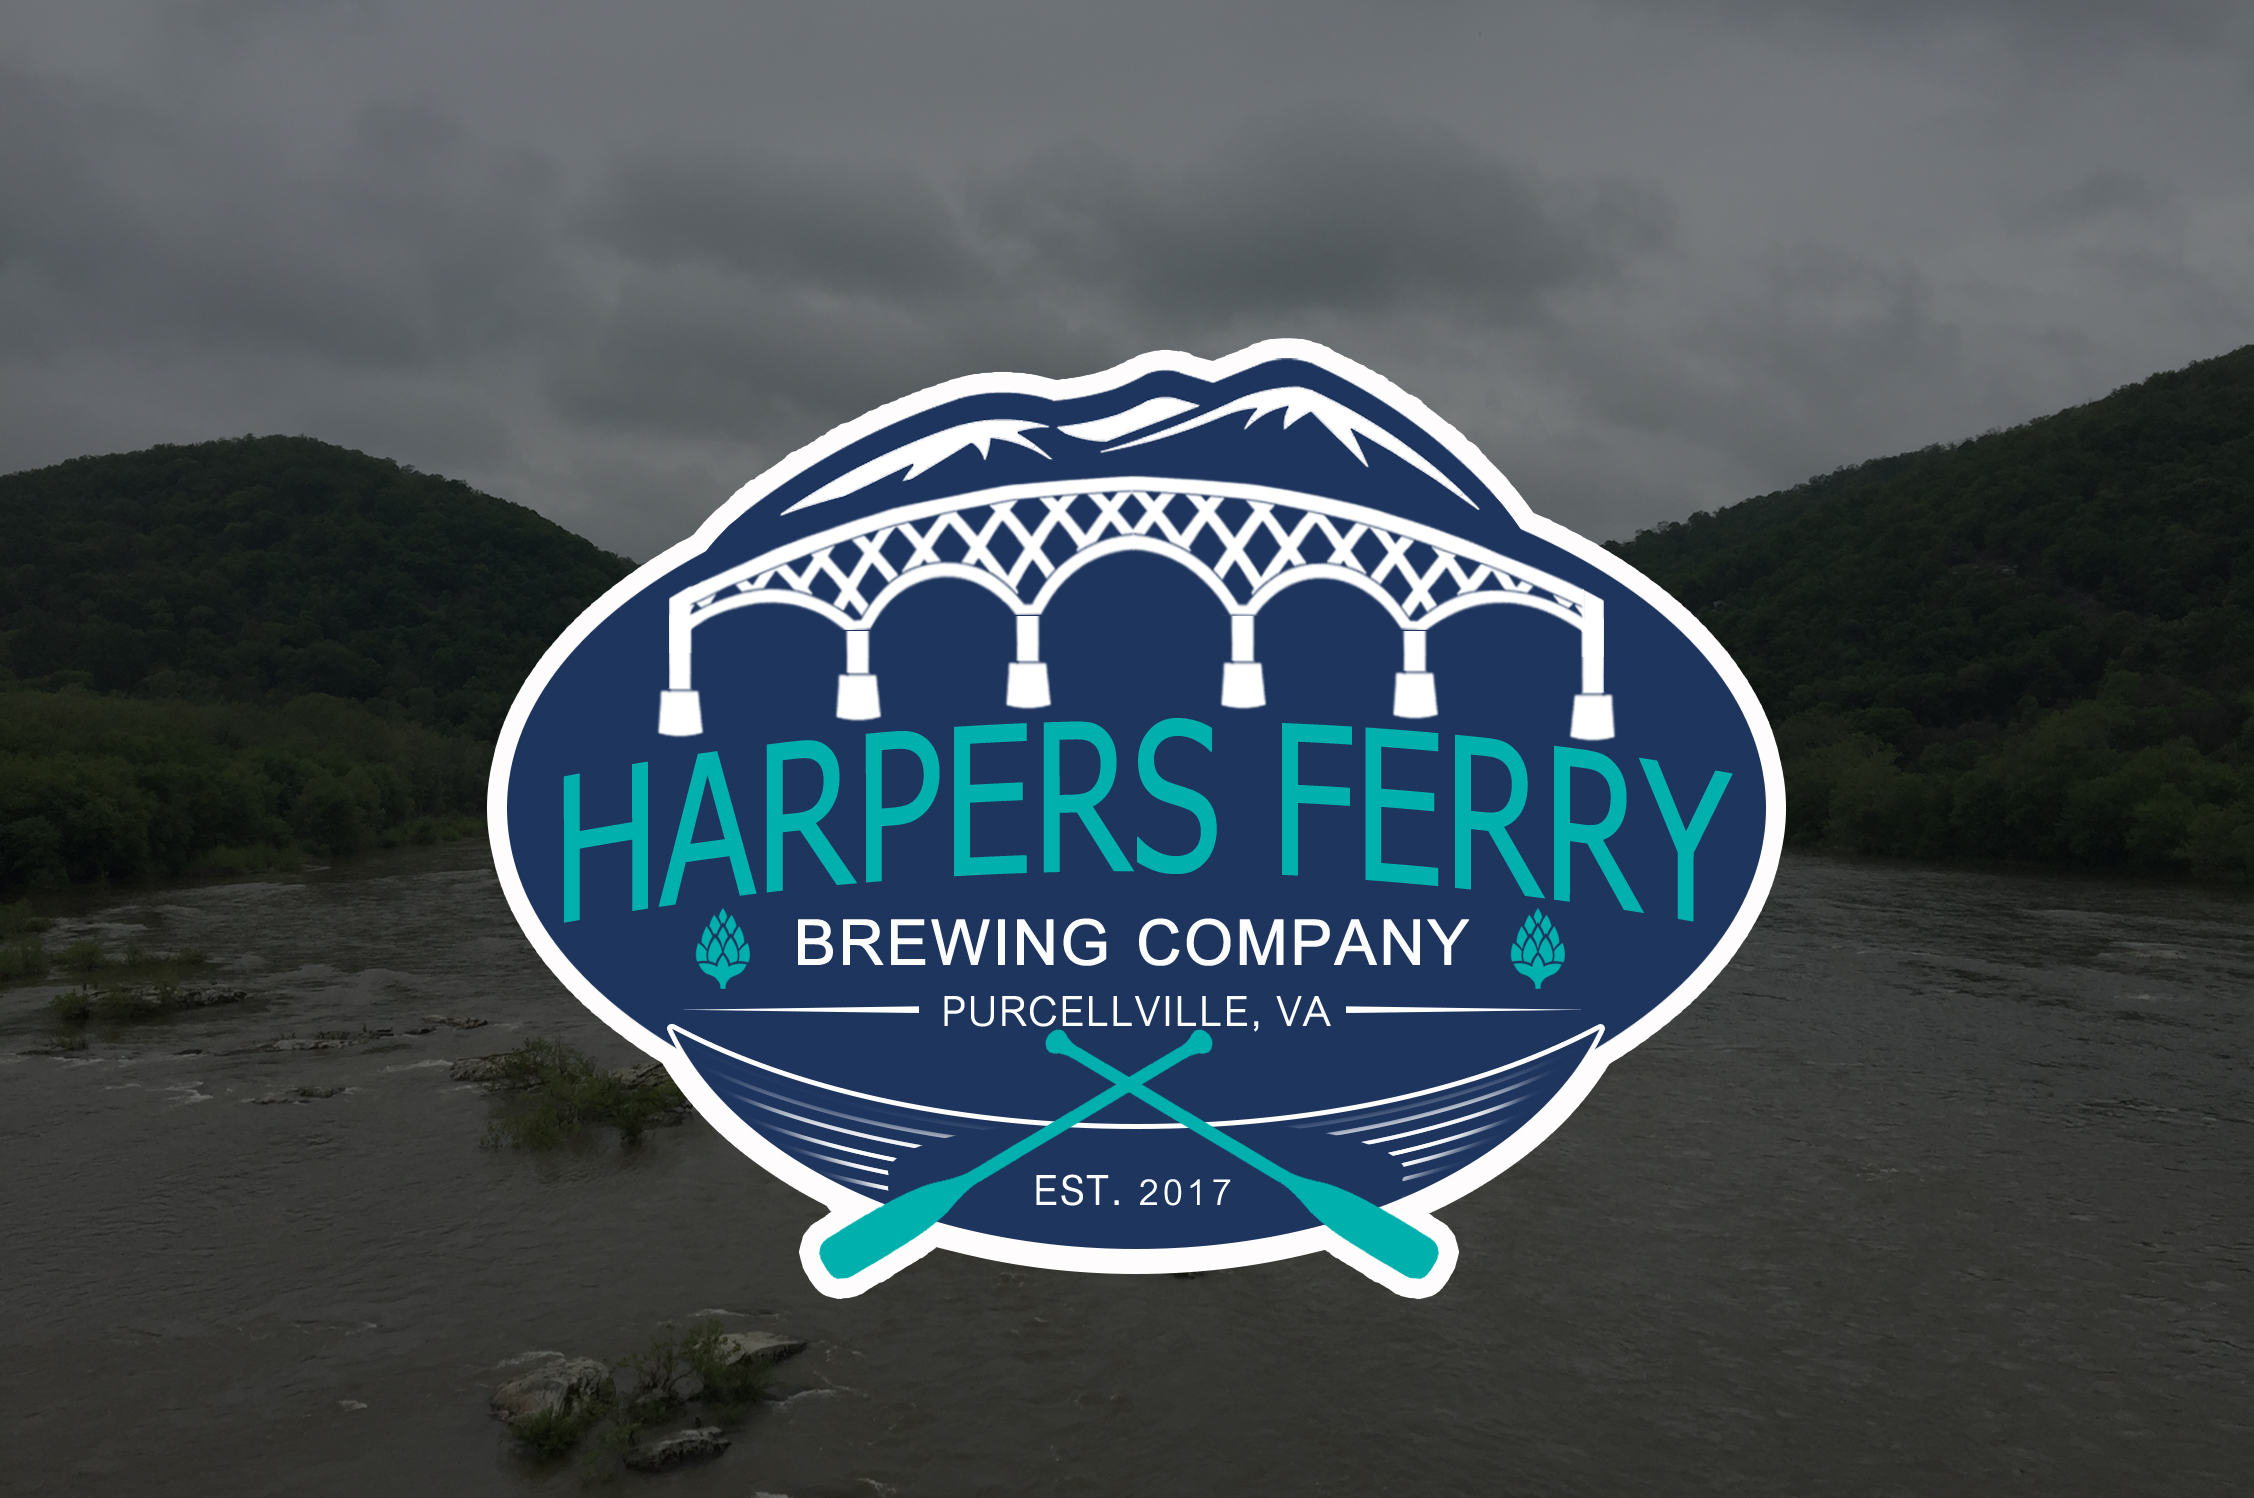 Logo Design by JSDESIGNGROUP - Entry No. 77 in the Logo Design Contest Unique Logo Design Wanted for Harpers ferry brewing company.